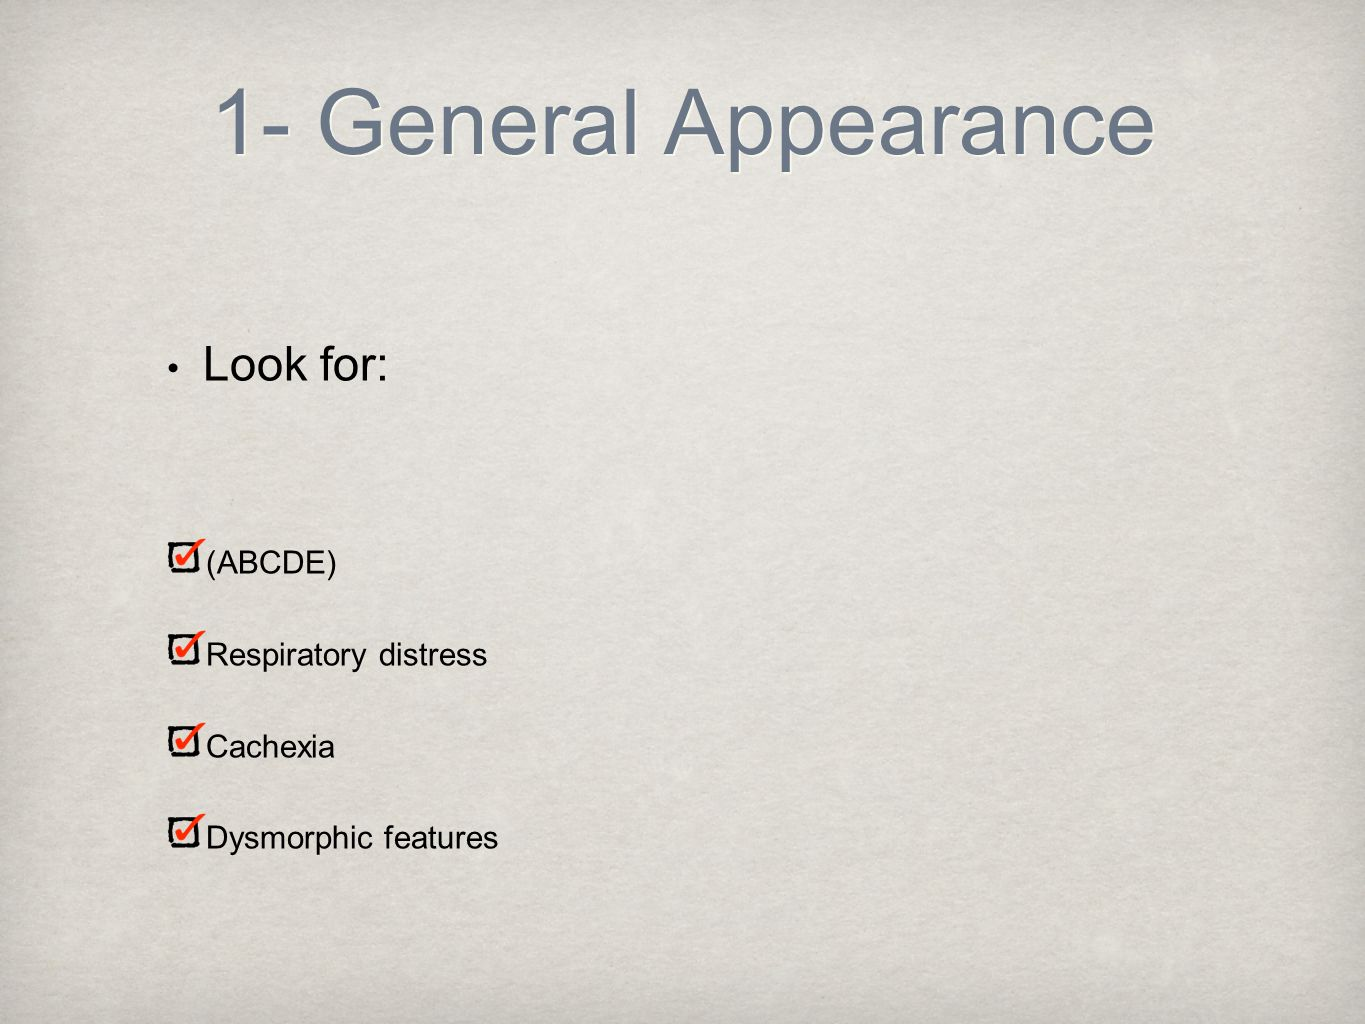 1- General Appearance Look for: (ABCDE) Respiratory distress Cachexia